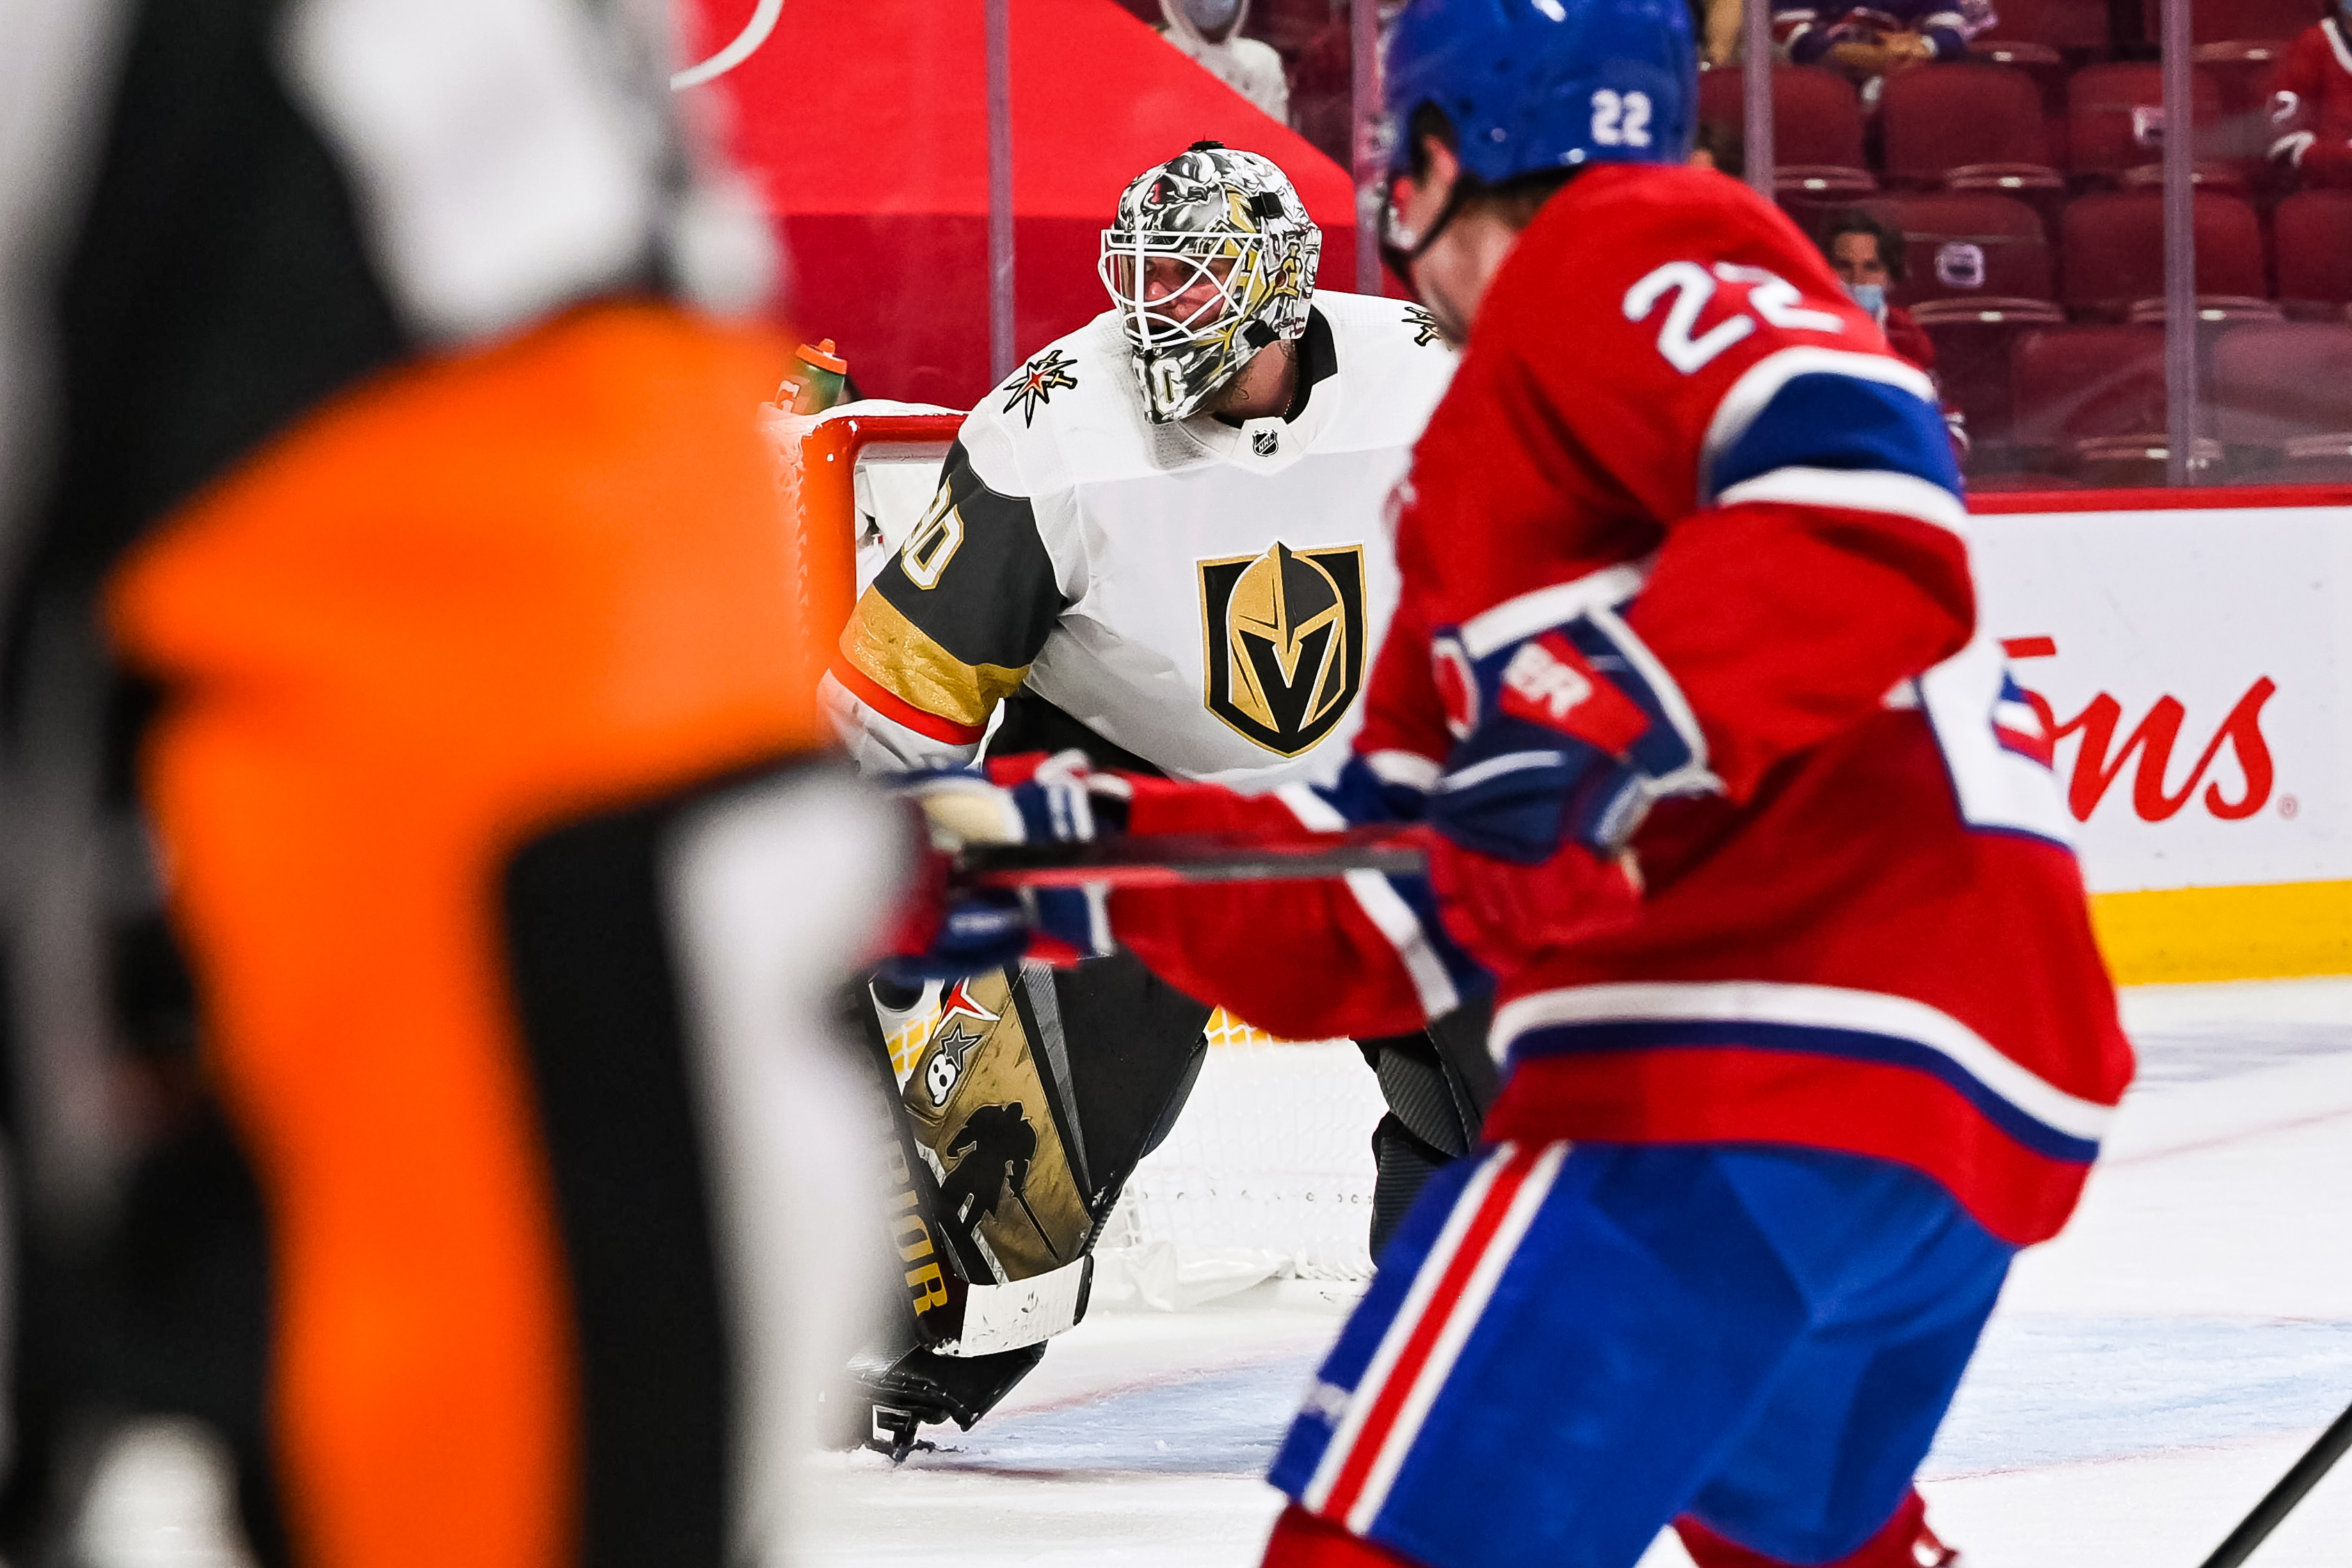 Las Vegas Golden Knights goalie Robin Lehner (90) tracks the play on his right during the NHL Stanley Cup Playoffs Semifinals game 4 between the Las Vegas Golden Knights versus the Montreal Canadiens on June 20, 2021, at Bell Centre in Montreal, QC